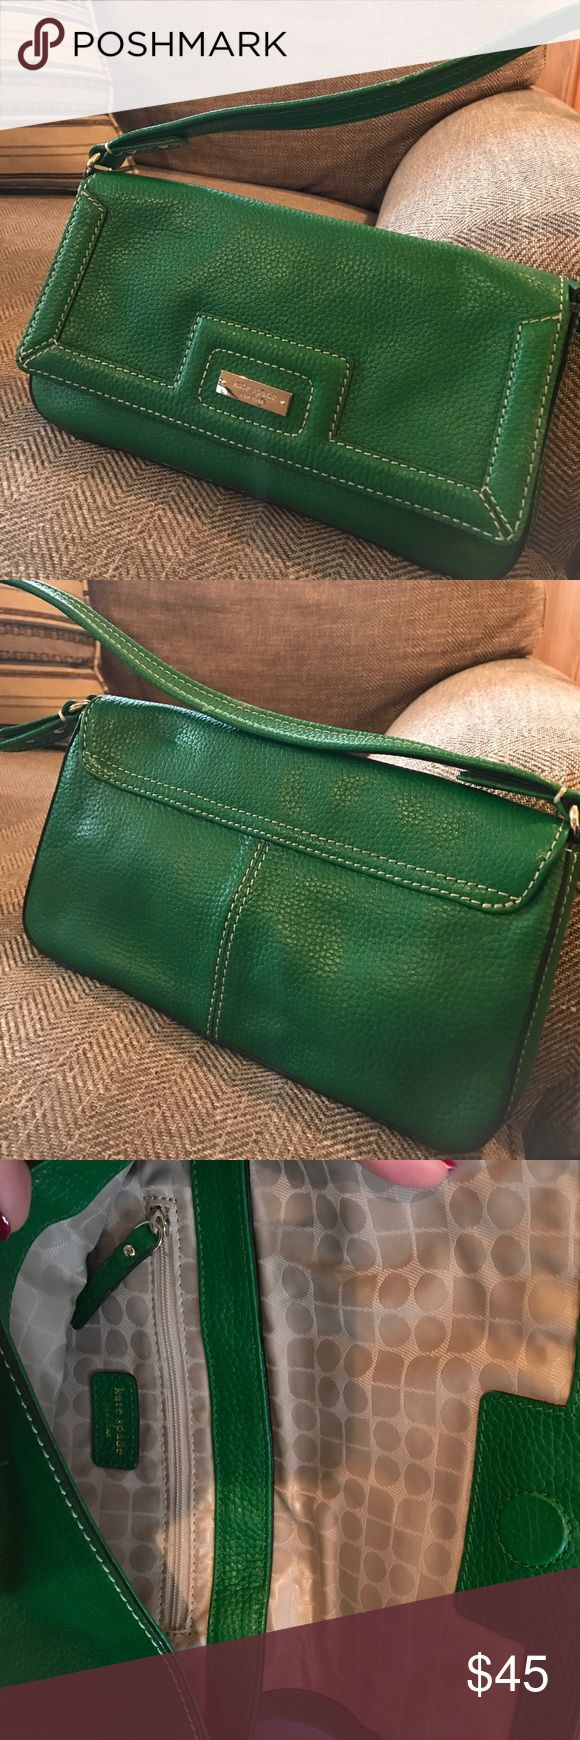 Kate Spade Kelly green leather shoulder bag Kate Spade Kelly green shoulder bag. 10.5 inches wide, 5.5 inches deep. In practically new condition! kate spade Bags Shoulder Bags